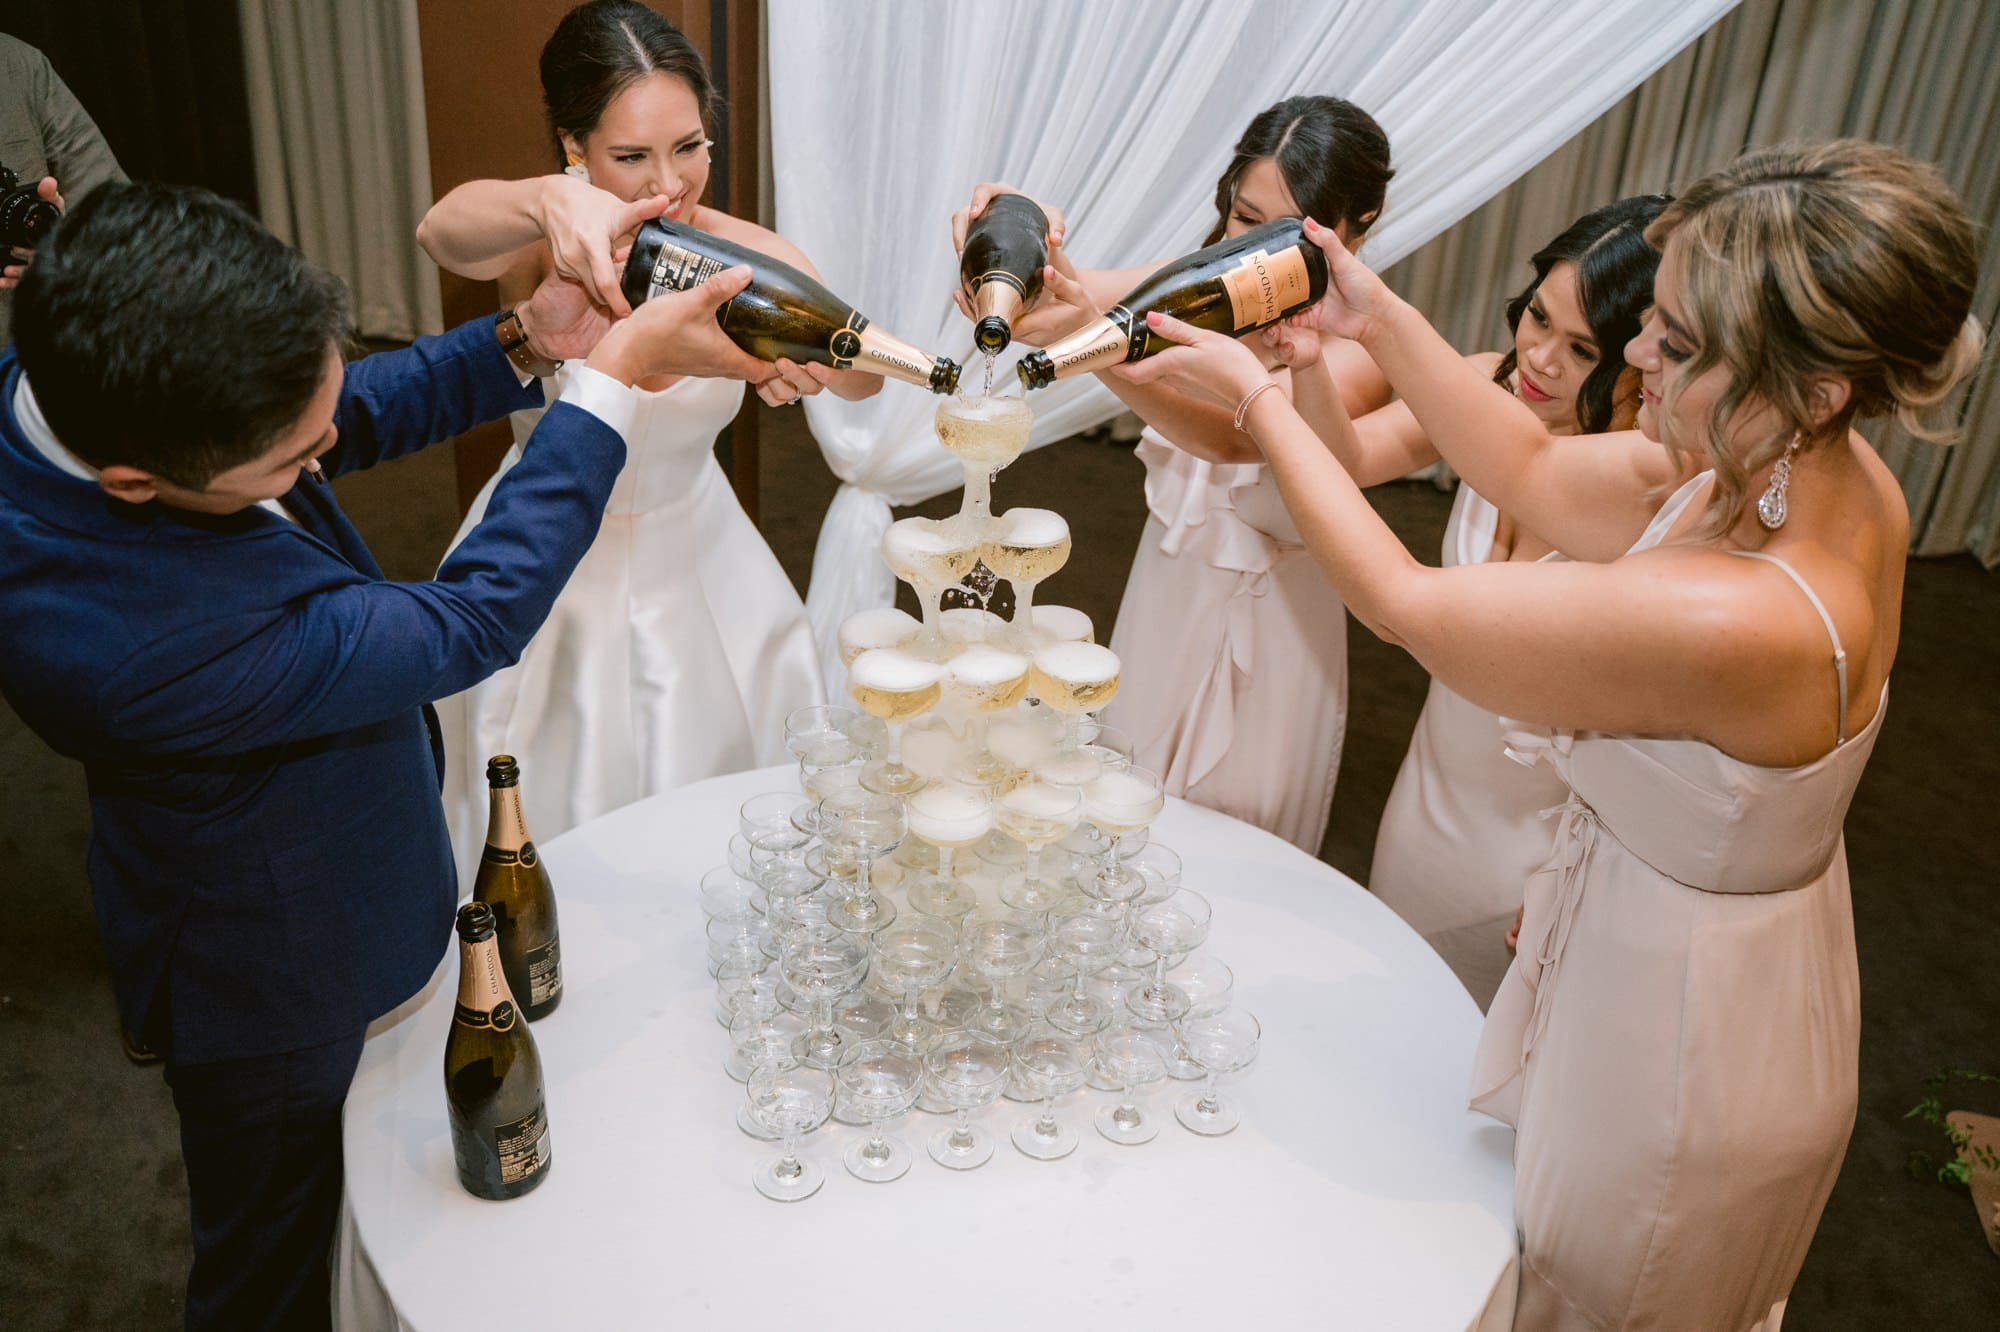 Victoria Park wedding photographer champagne tower bridal party reception details